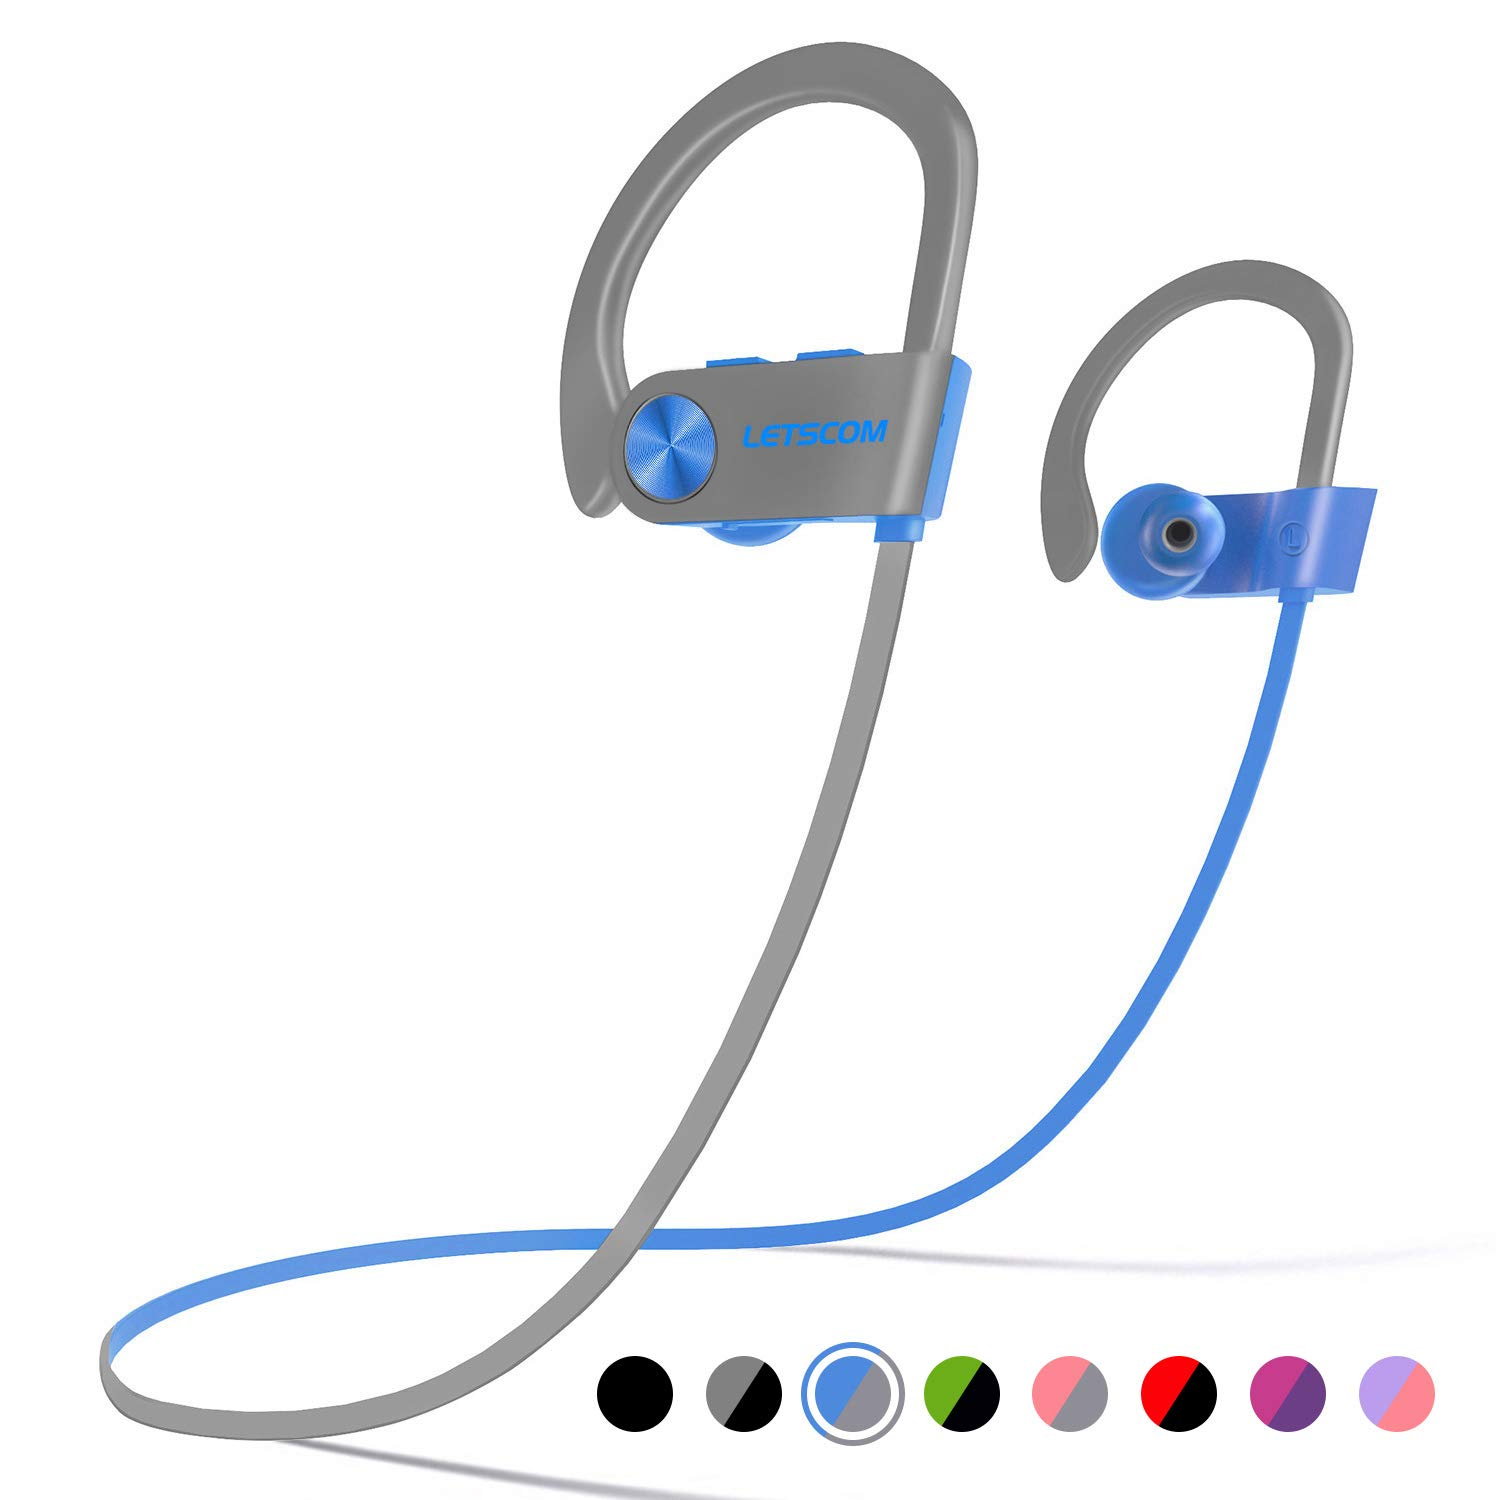 LETSCOM Bluetooth Headphones IPX7 Waterproof, Wireless Sport Earphones, HiFi Bass Stereo Sweatproof Earbuds w/Mic, Noise Cancelling Headset for Workout, Running, Gym, 8 Hours Play Time